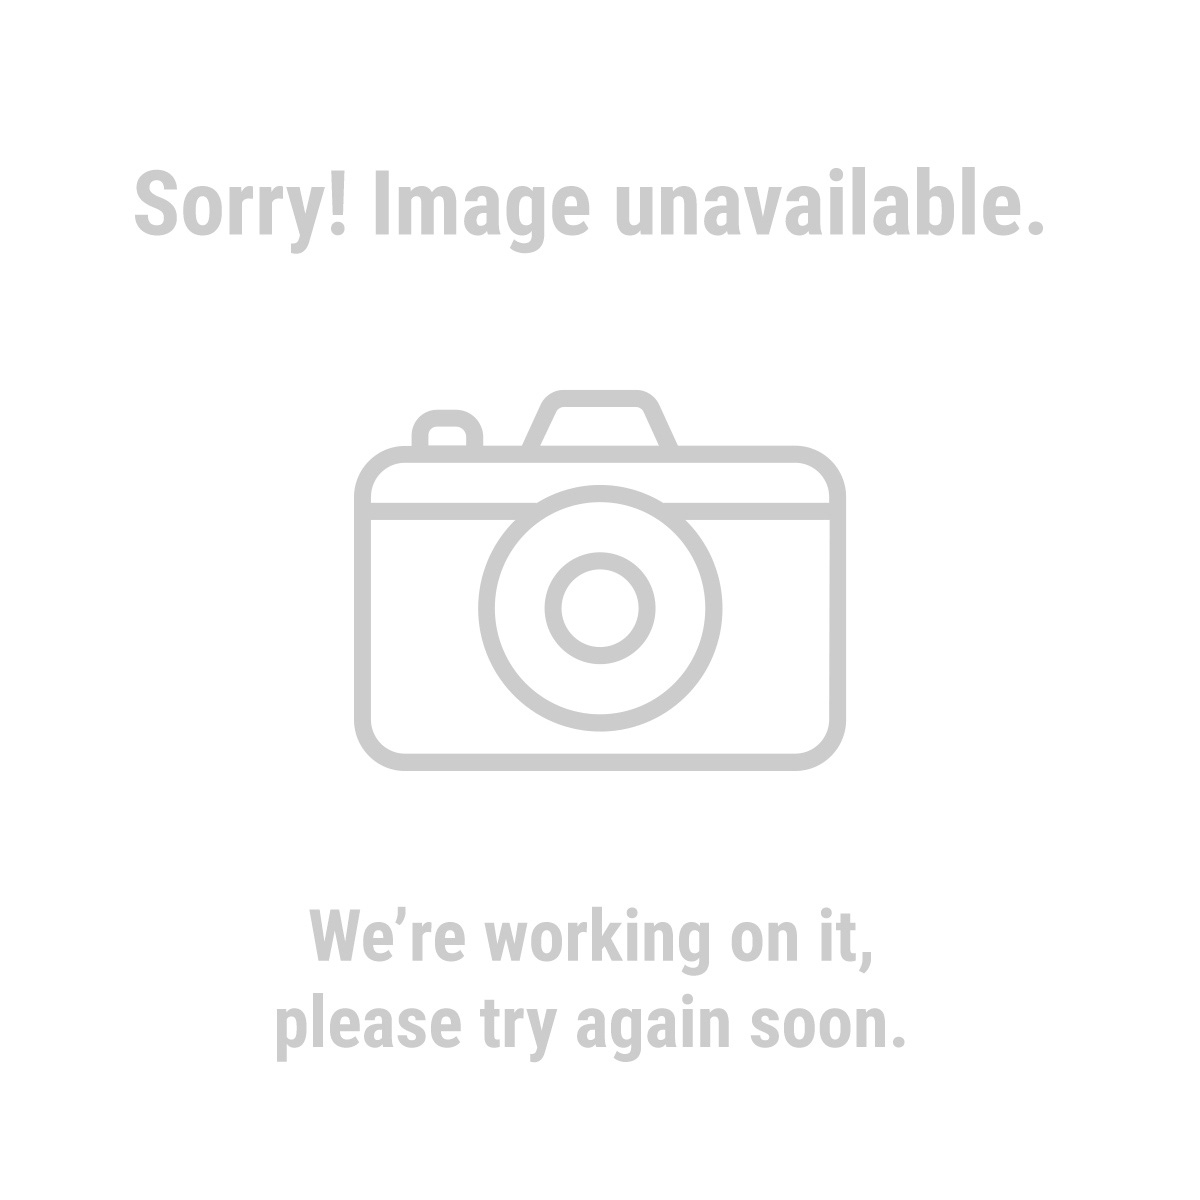 Pacific Hydrostar® 68396 158 GPH Miniature Submersible Fountain Pump